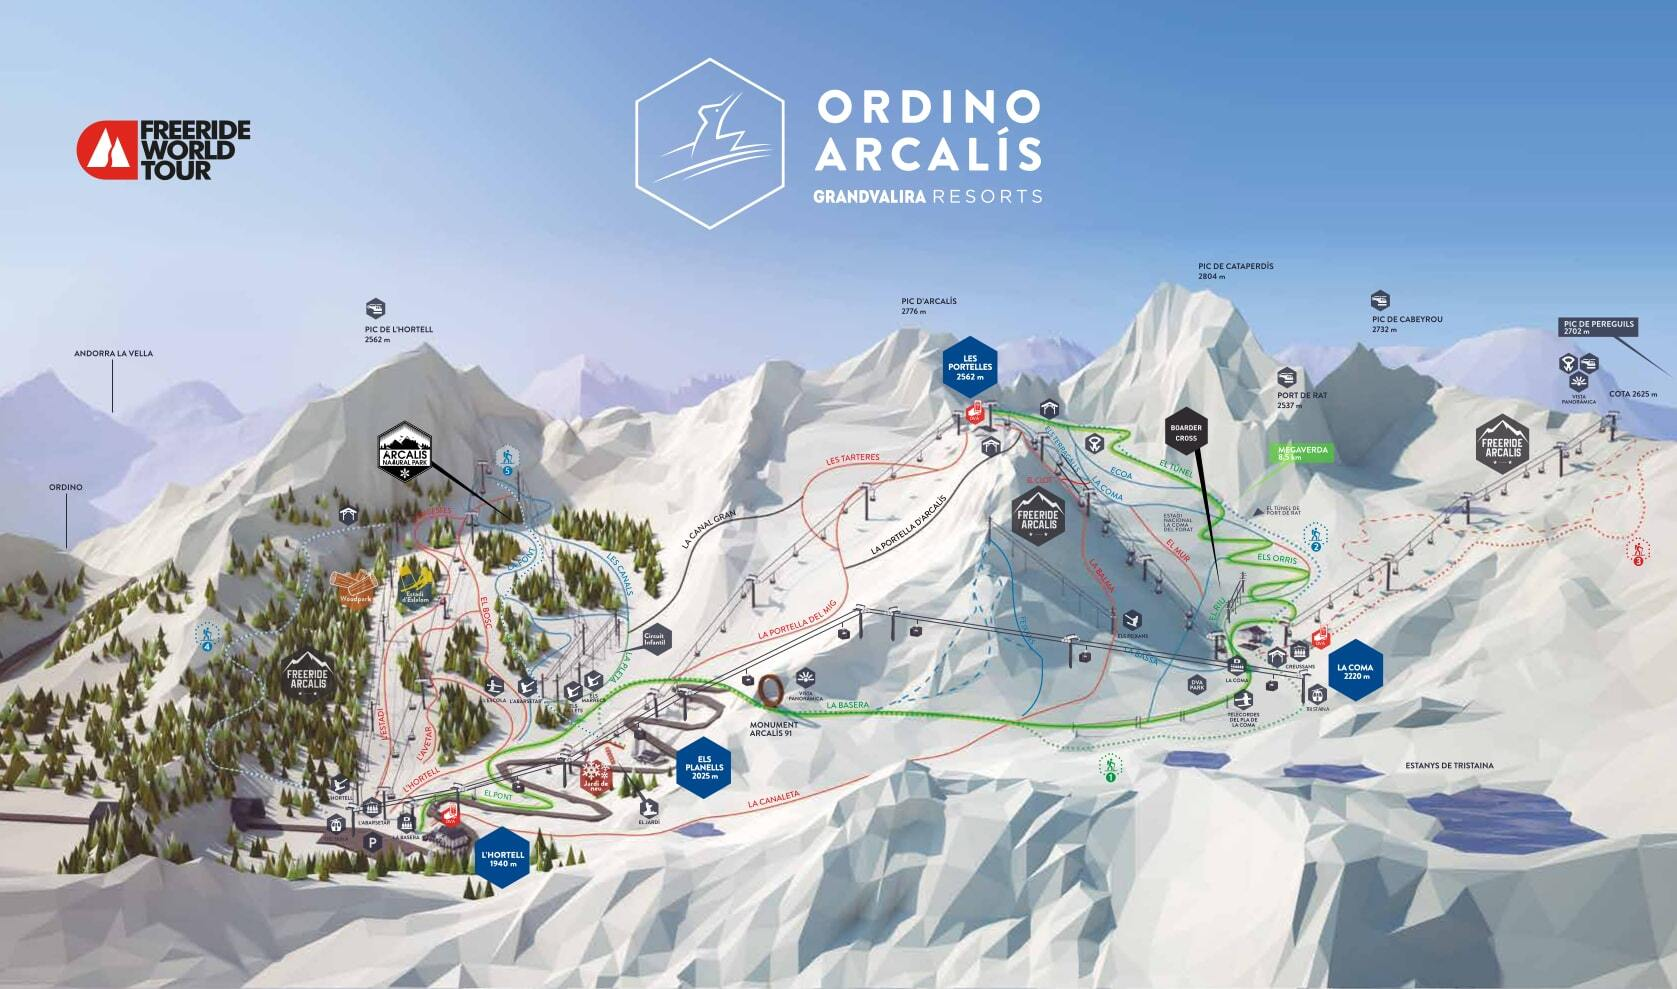 Ordino-Arcalís Piste / Trail Map